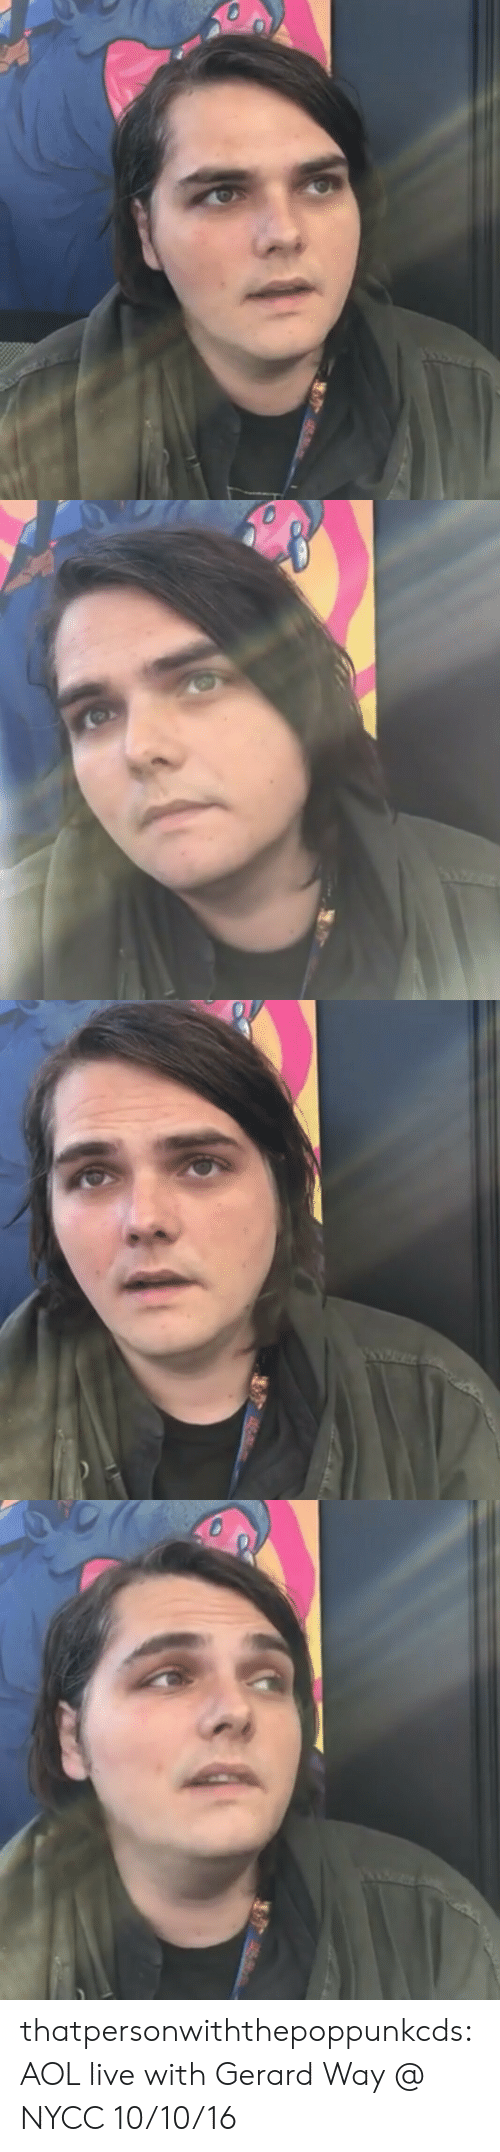 Gerard Way: thatpersonwiththepoppunkcds:  AOL live with Gerard Way @ NYCC 10/10/16